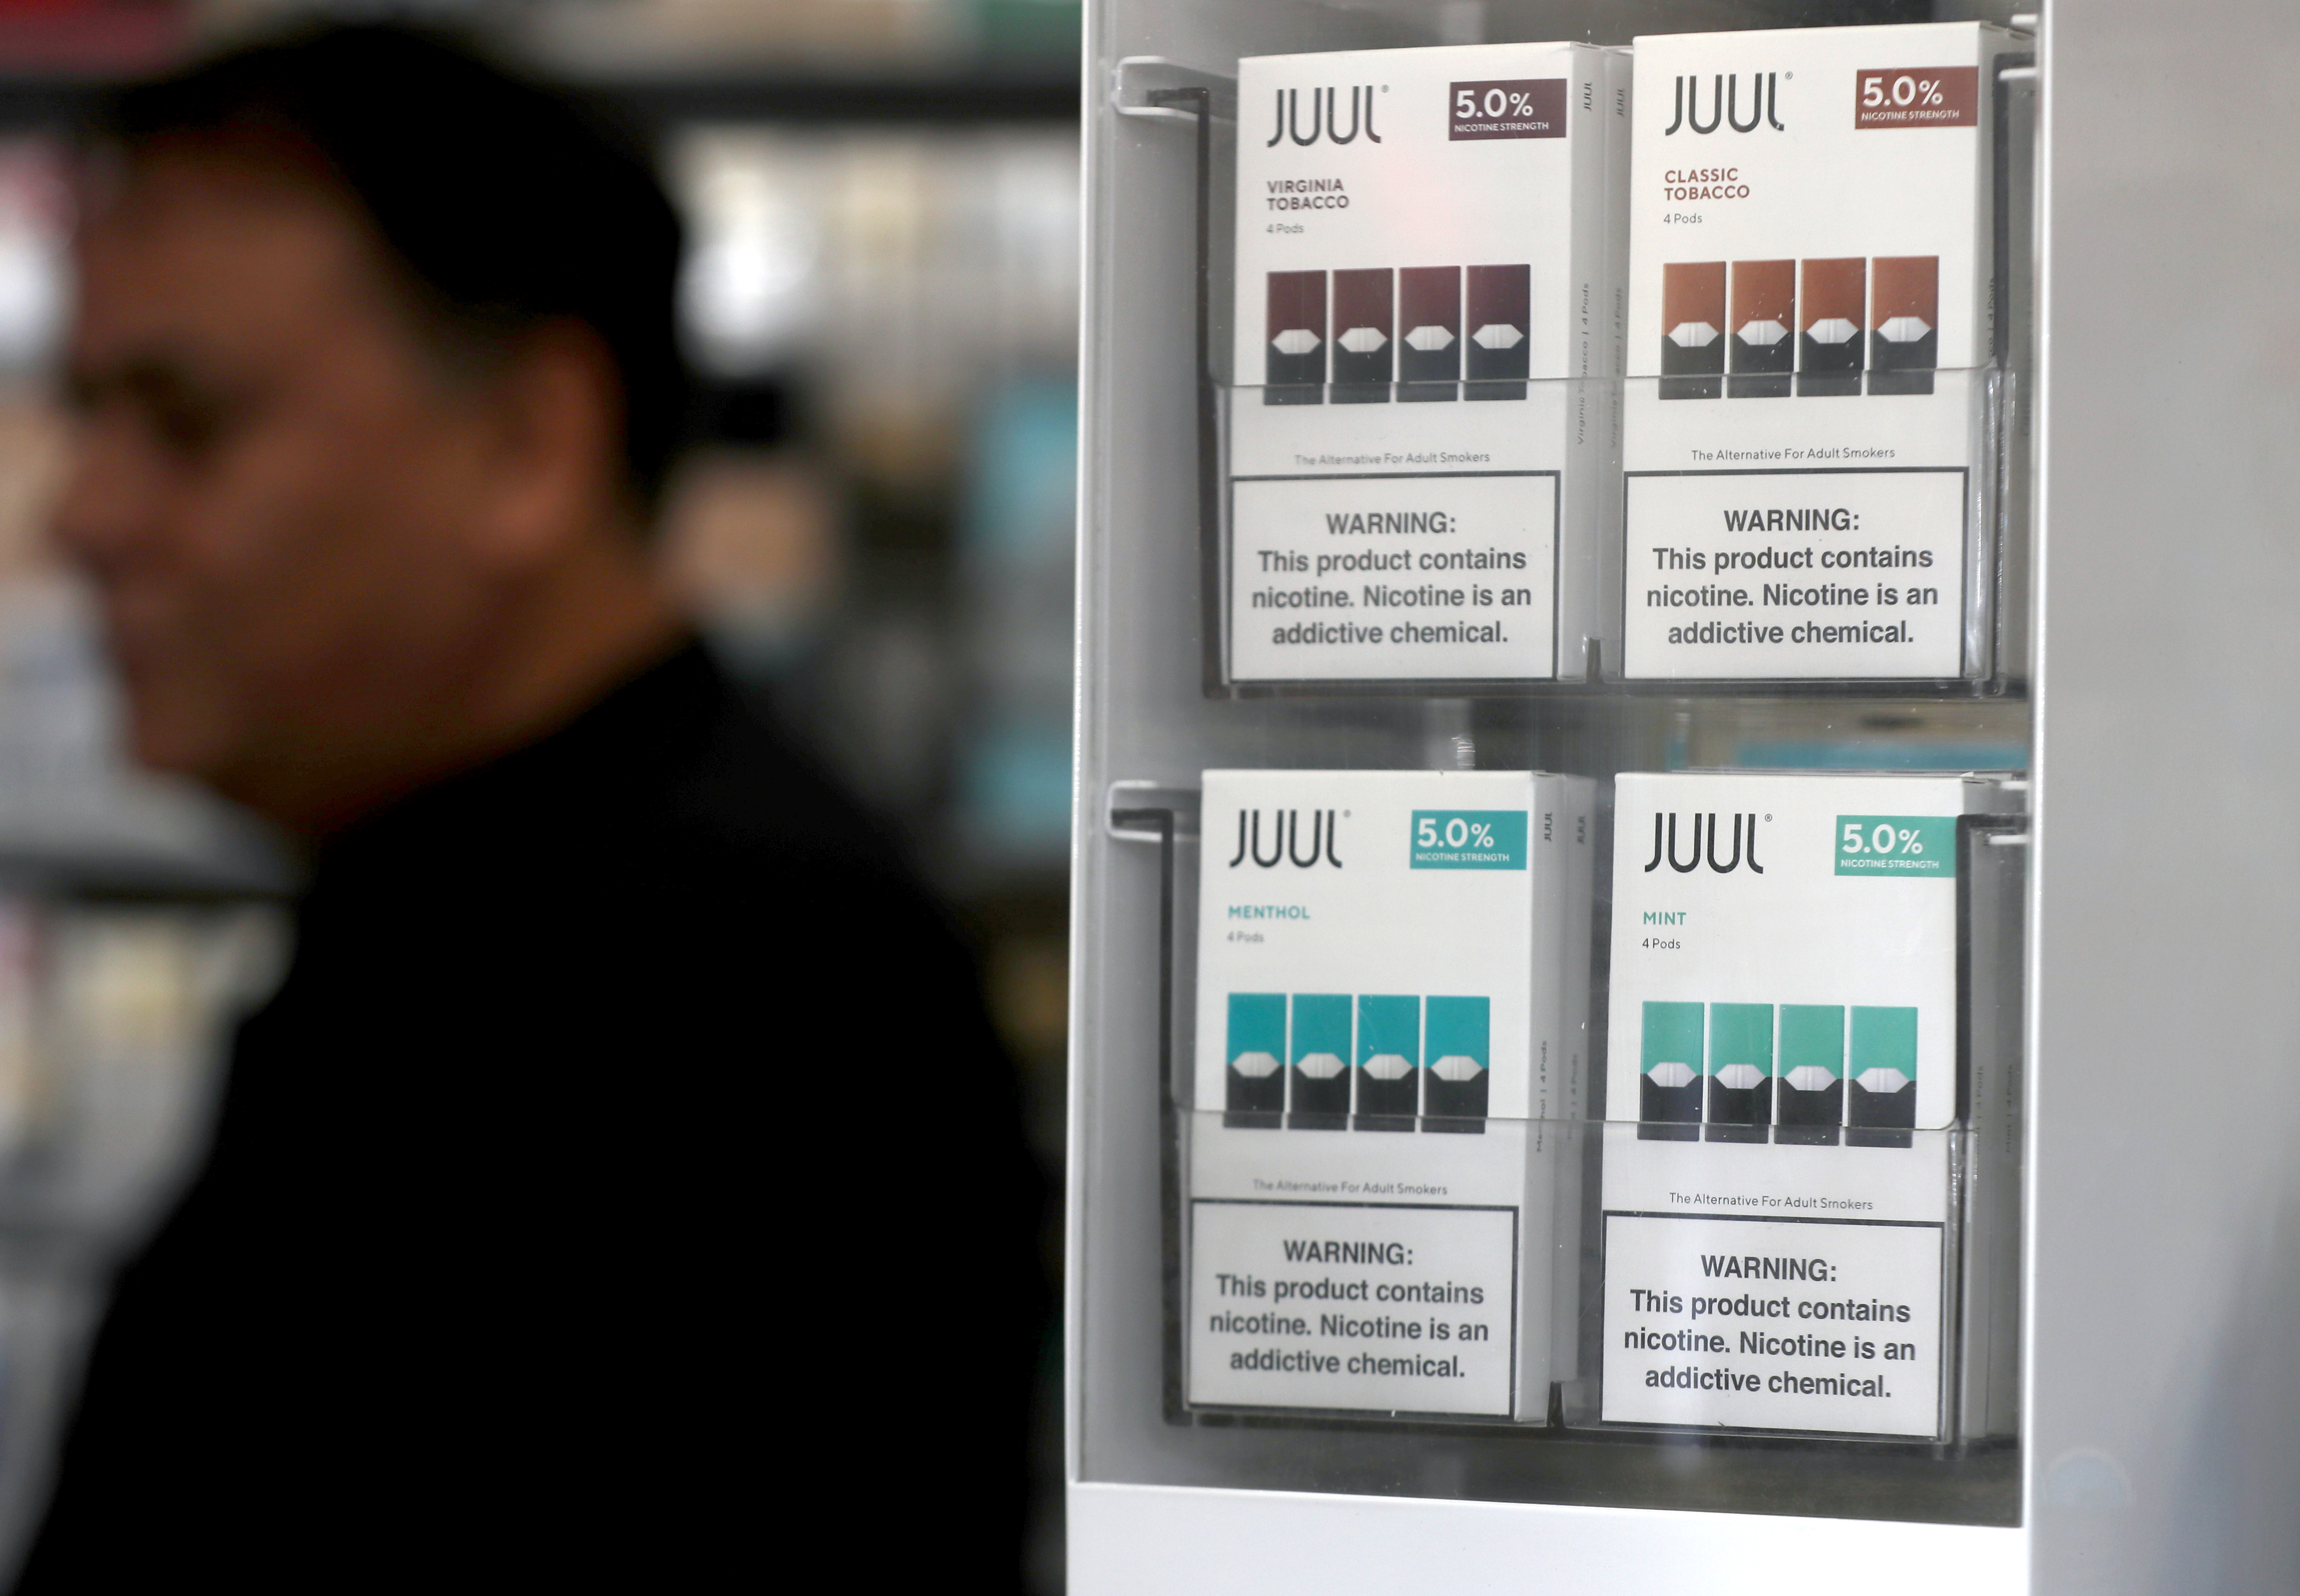 Packages of Juul mint flavored e-cigarettes are displayed at San Rafael Smokeshop on November 07, 2019 in San Rafael, California.